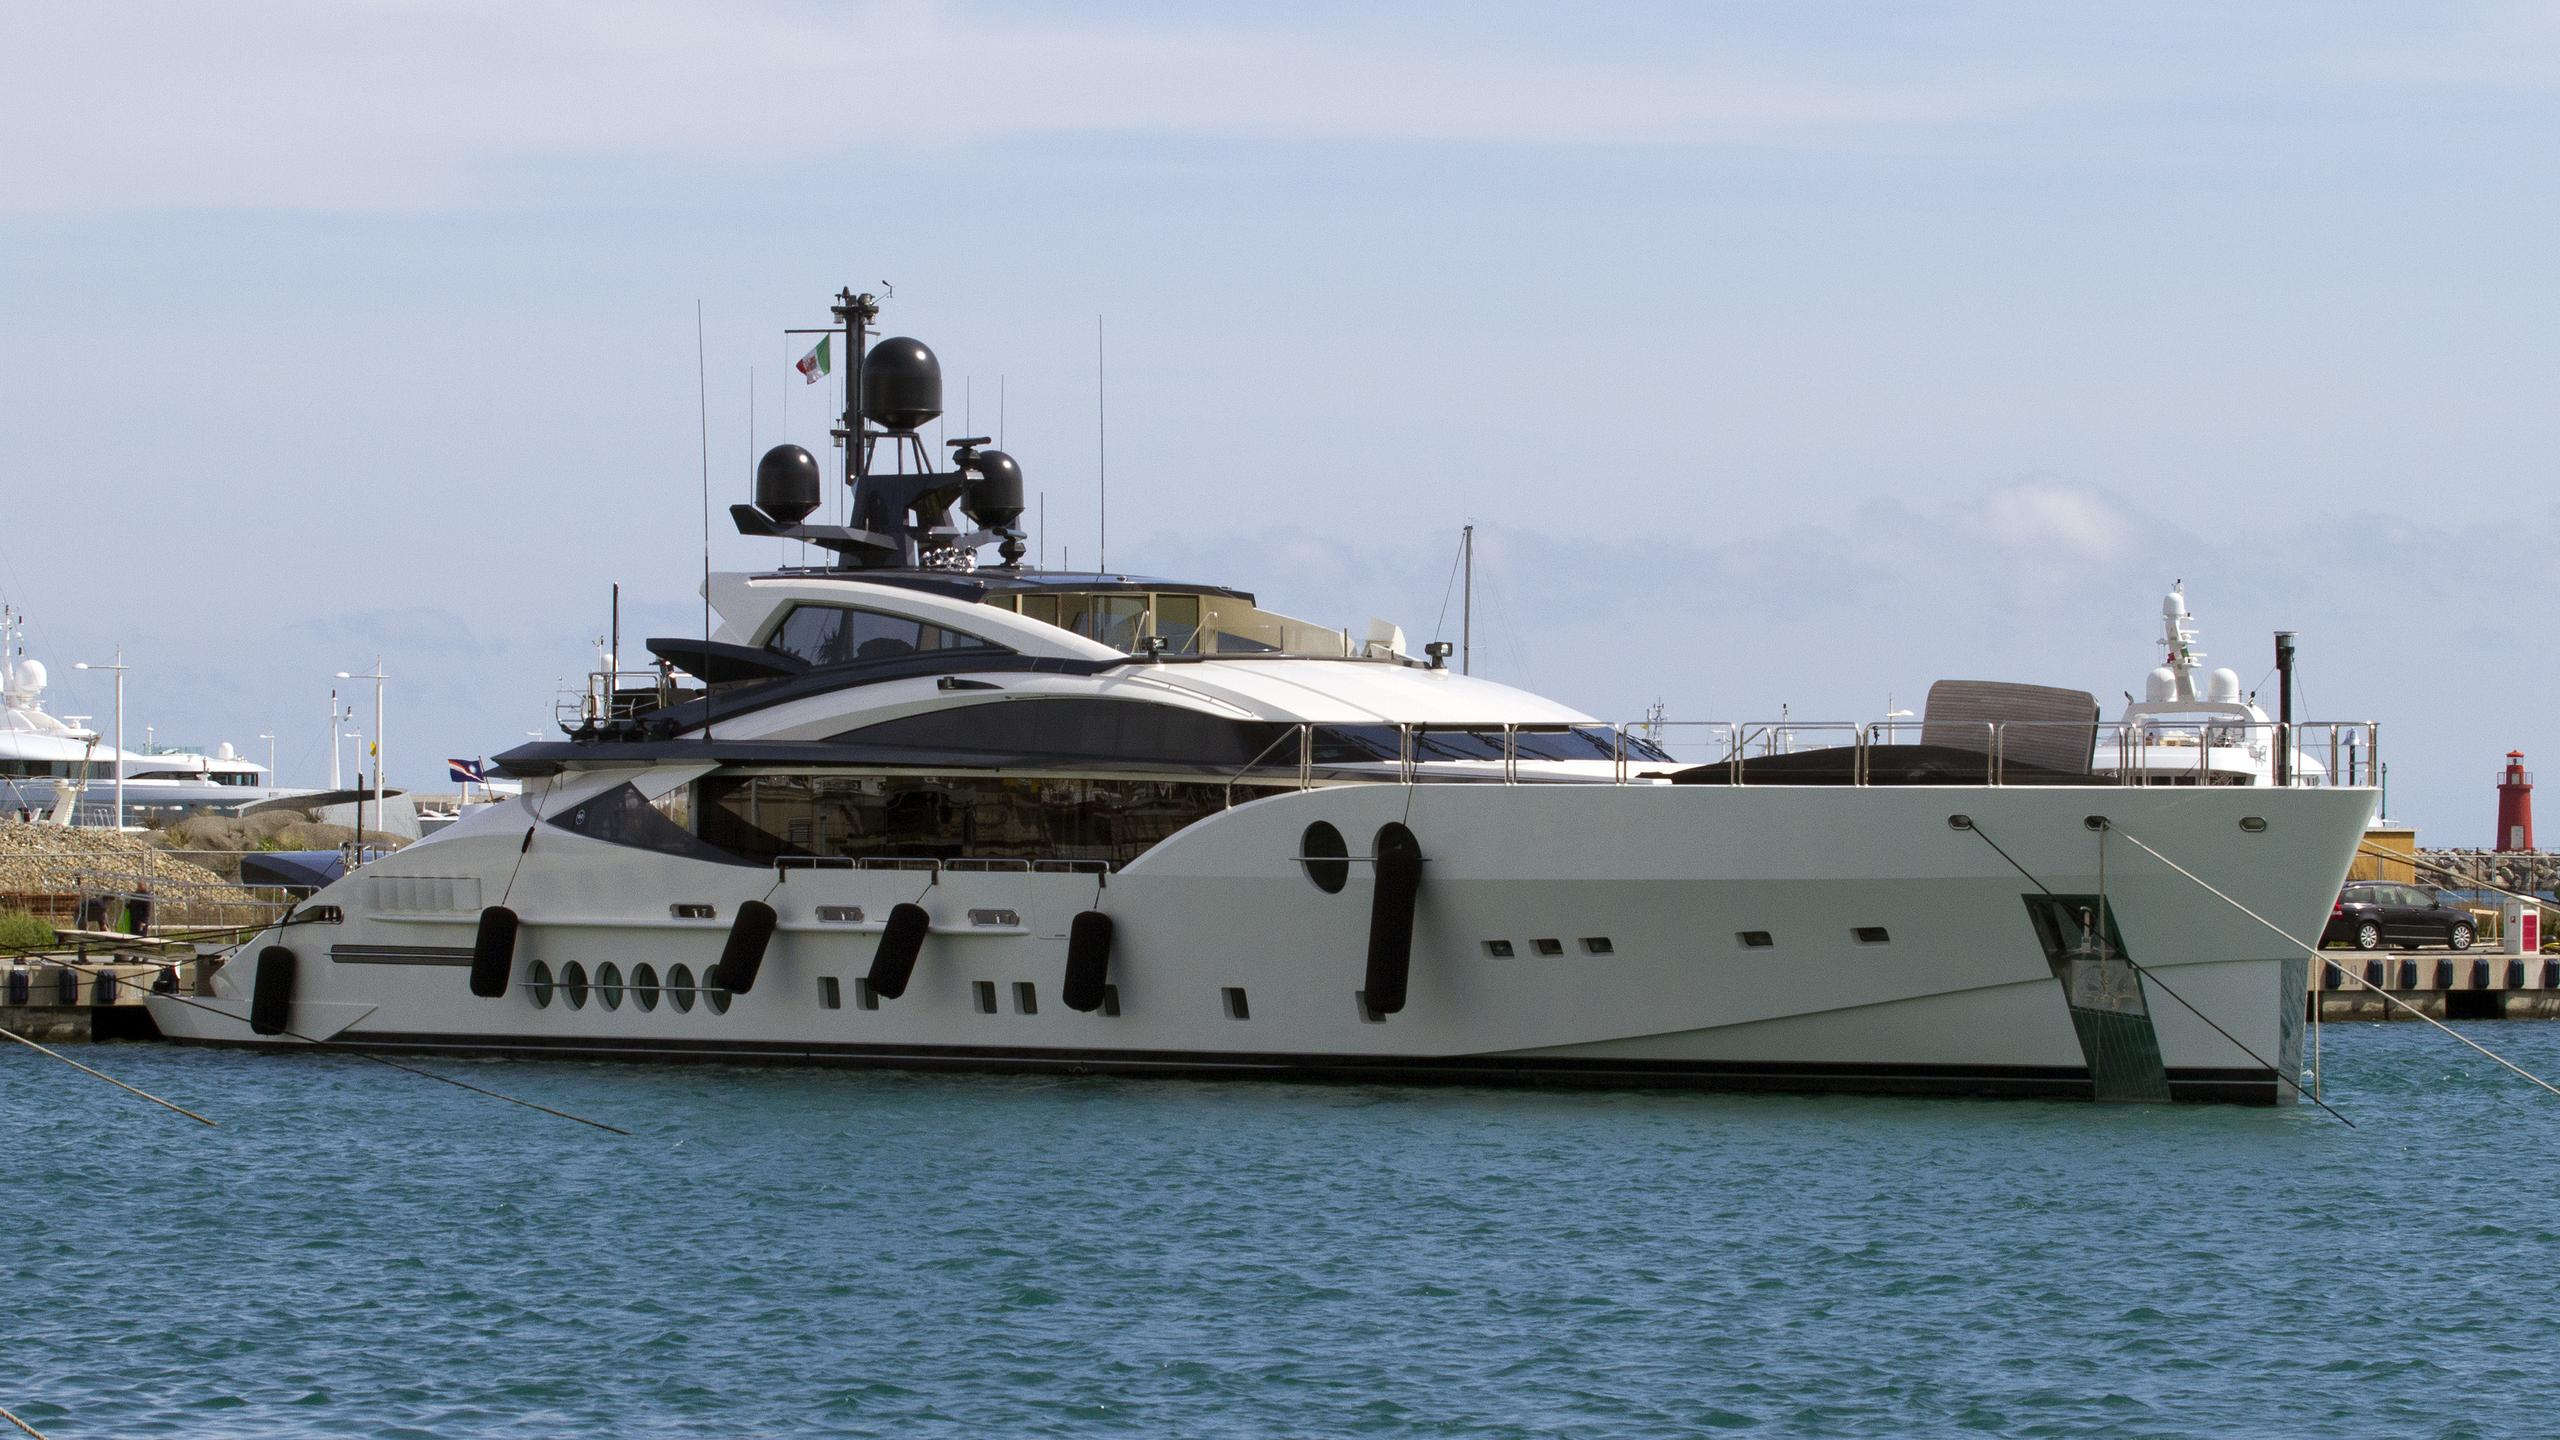 bliss-motor-yacht-palmer-johnson-2014-52m-half-profile